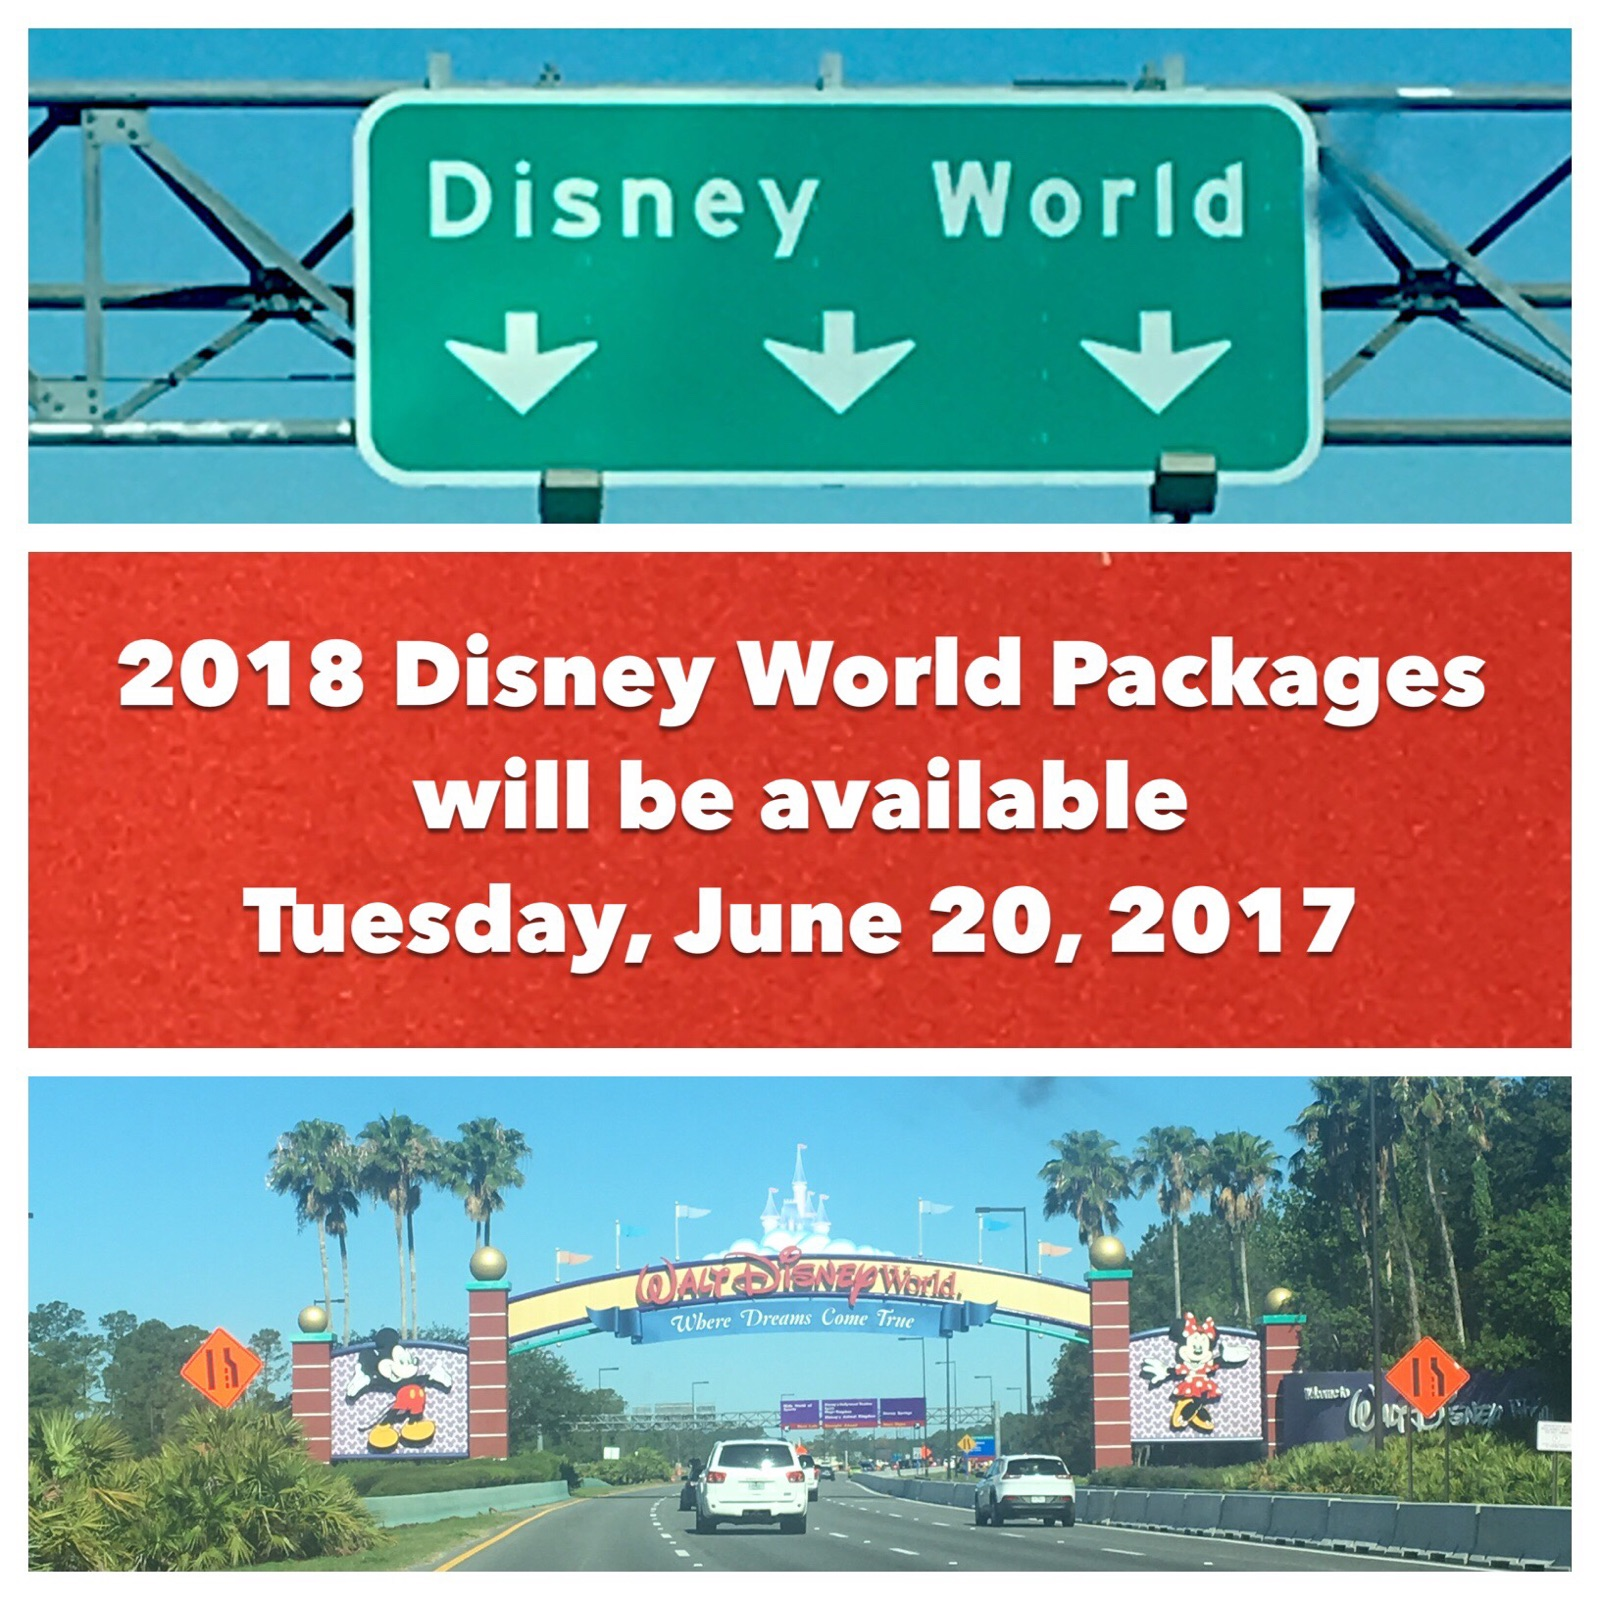 2018 Disney World packages will be available to book beginning Tuesday, January 20, 2017 for up to 499 days into the future.